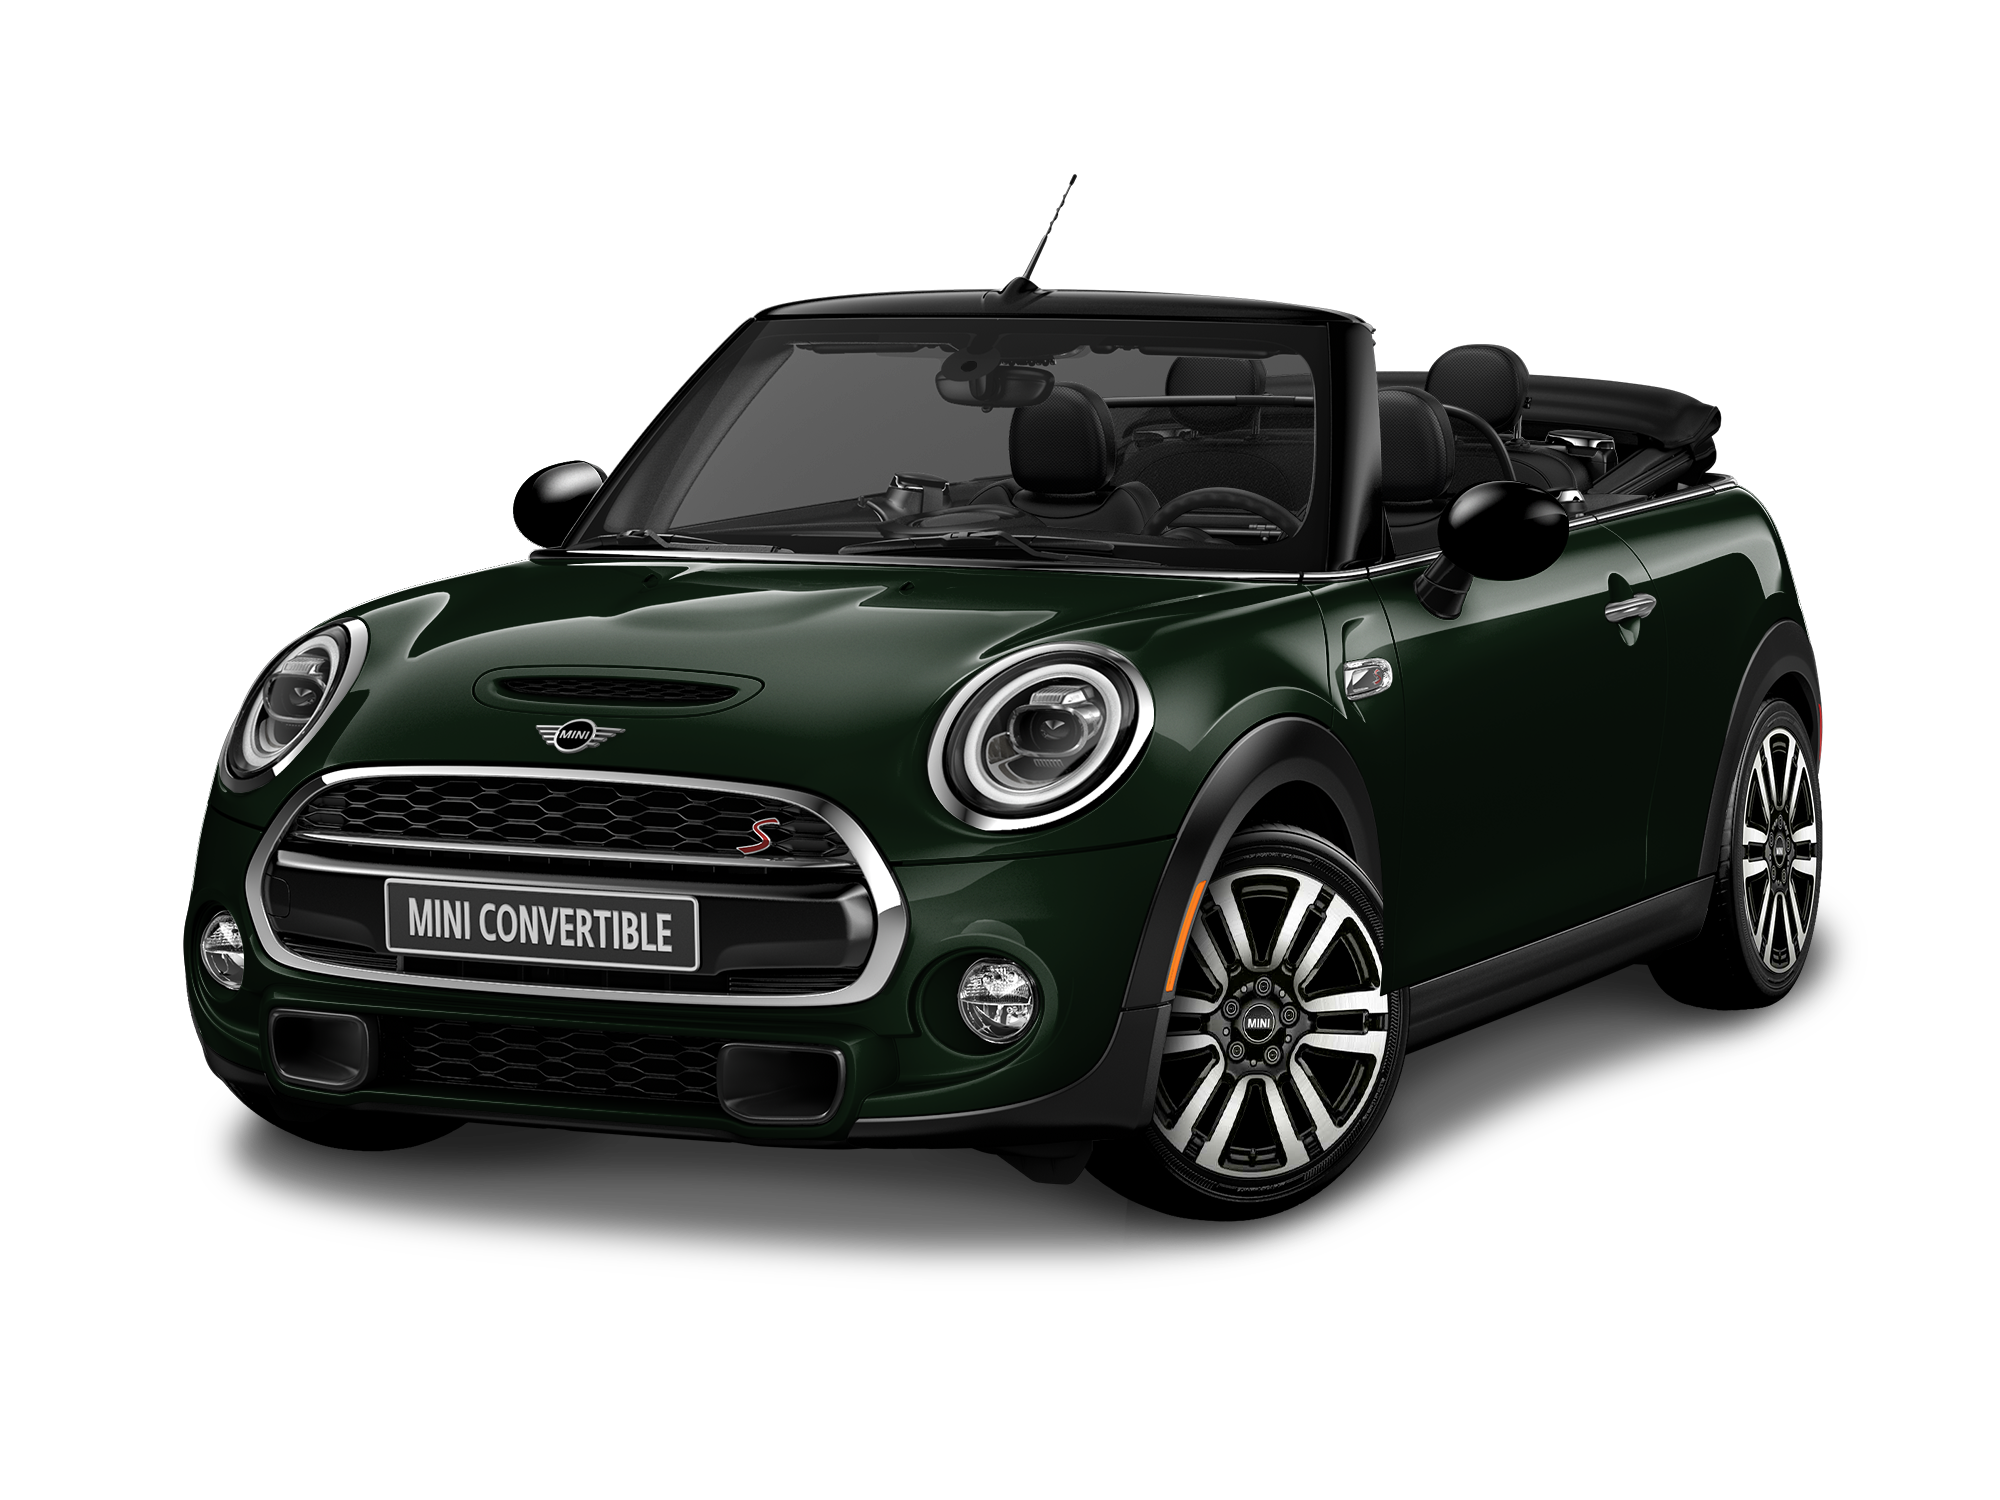 2019 MINI Cooper S Convertible Iconic Vehicle Photo in Appleton, WI 54913